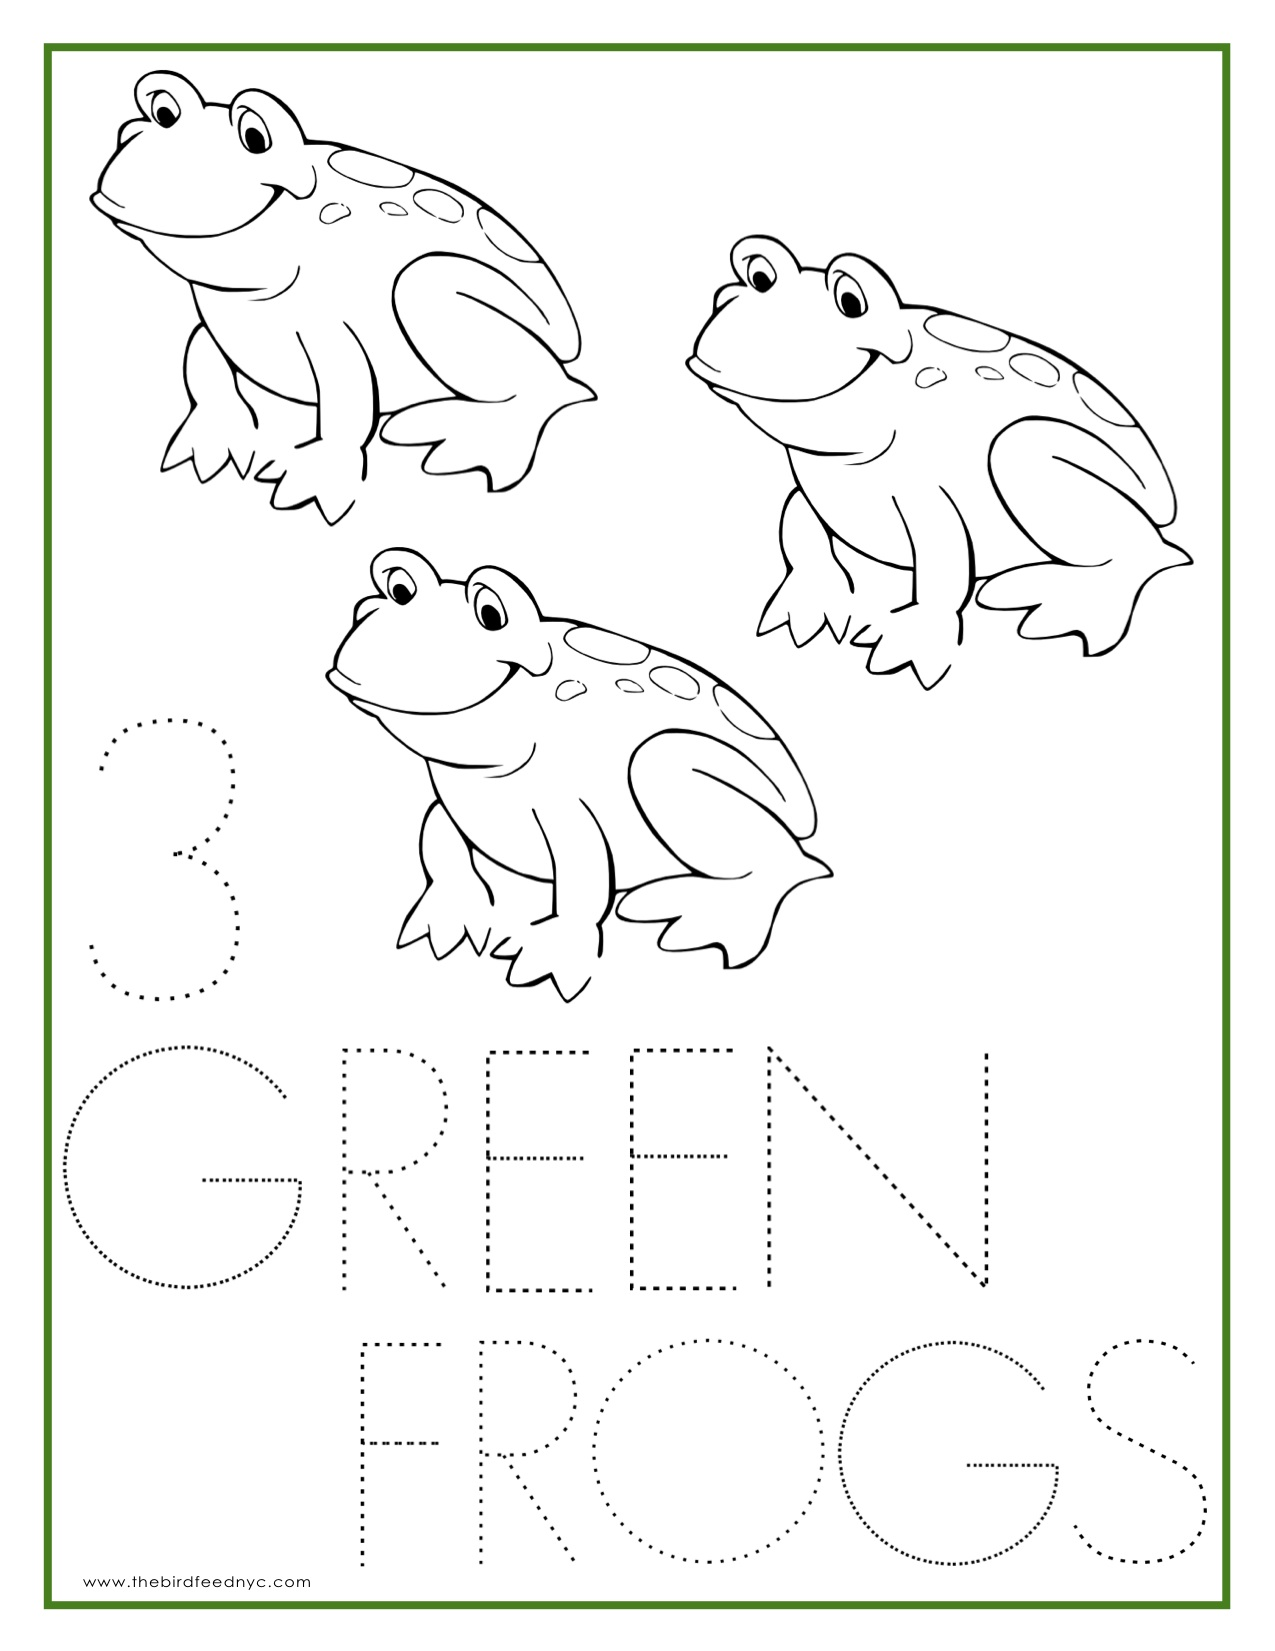 Coloring Sheets For Preschoolers Color Green Coloring Pages